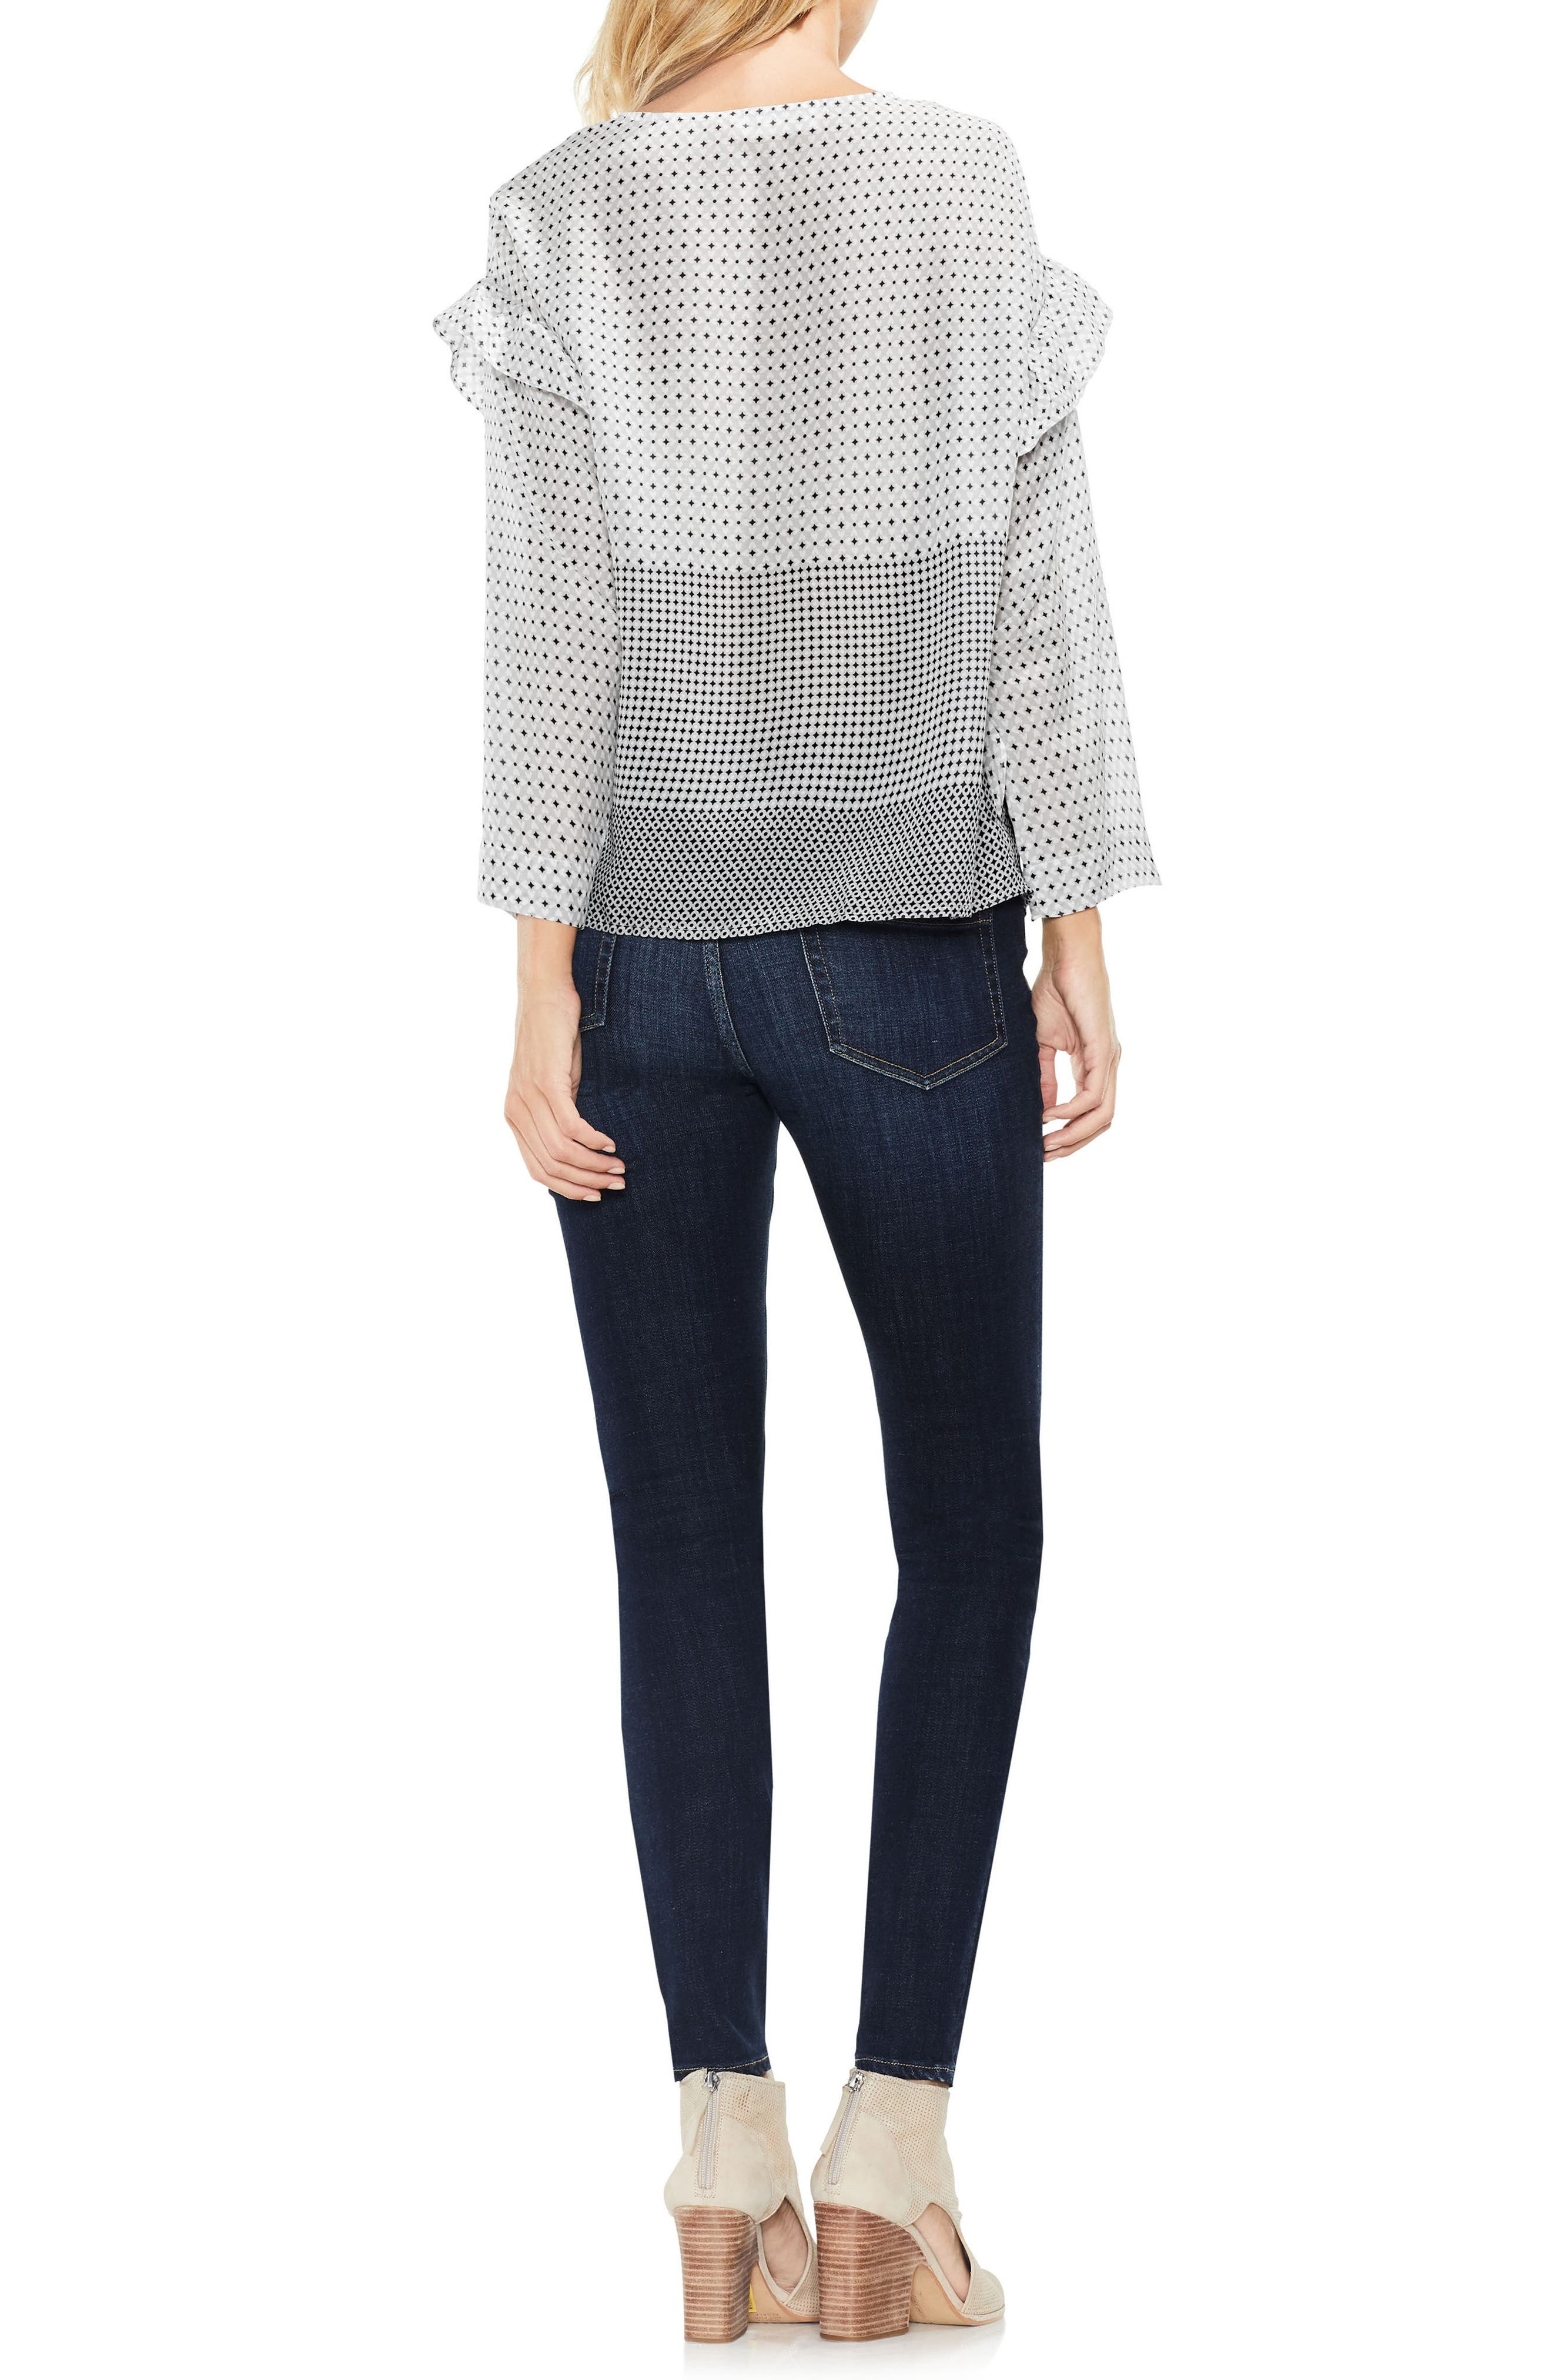 Two by VInce Camuto Quiet Tile Border Ruffle Top,                             Alternate thumbnail 3, color,                             063